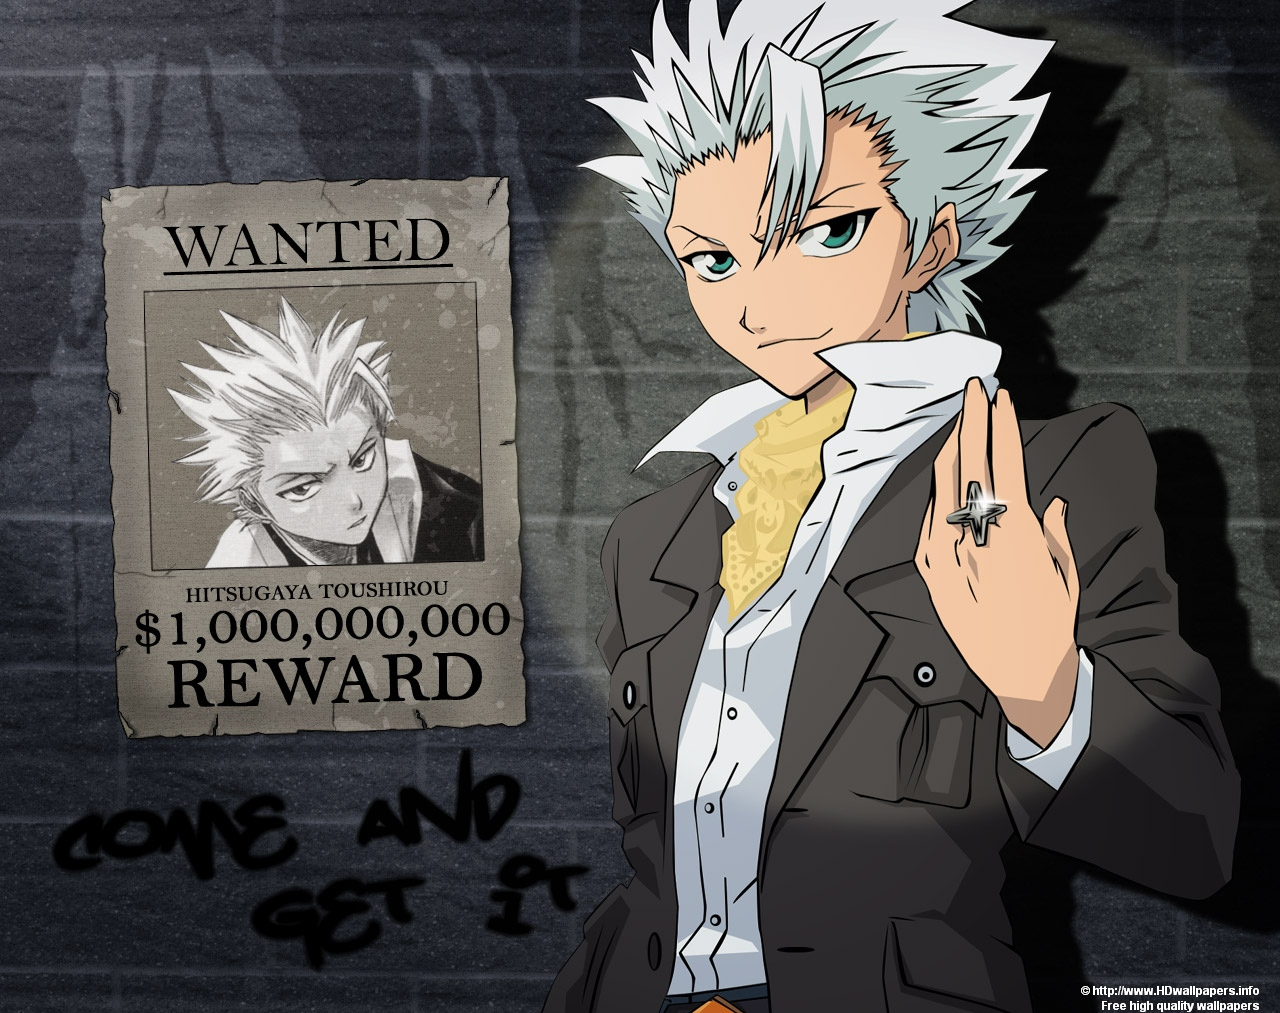 Anime Wallpaper Bleach Wallpaper Wanted Hitsugaya Toushiro